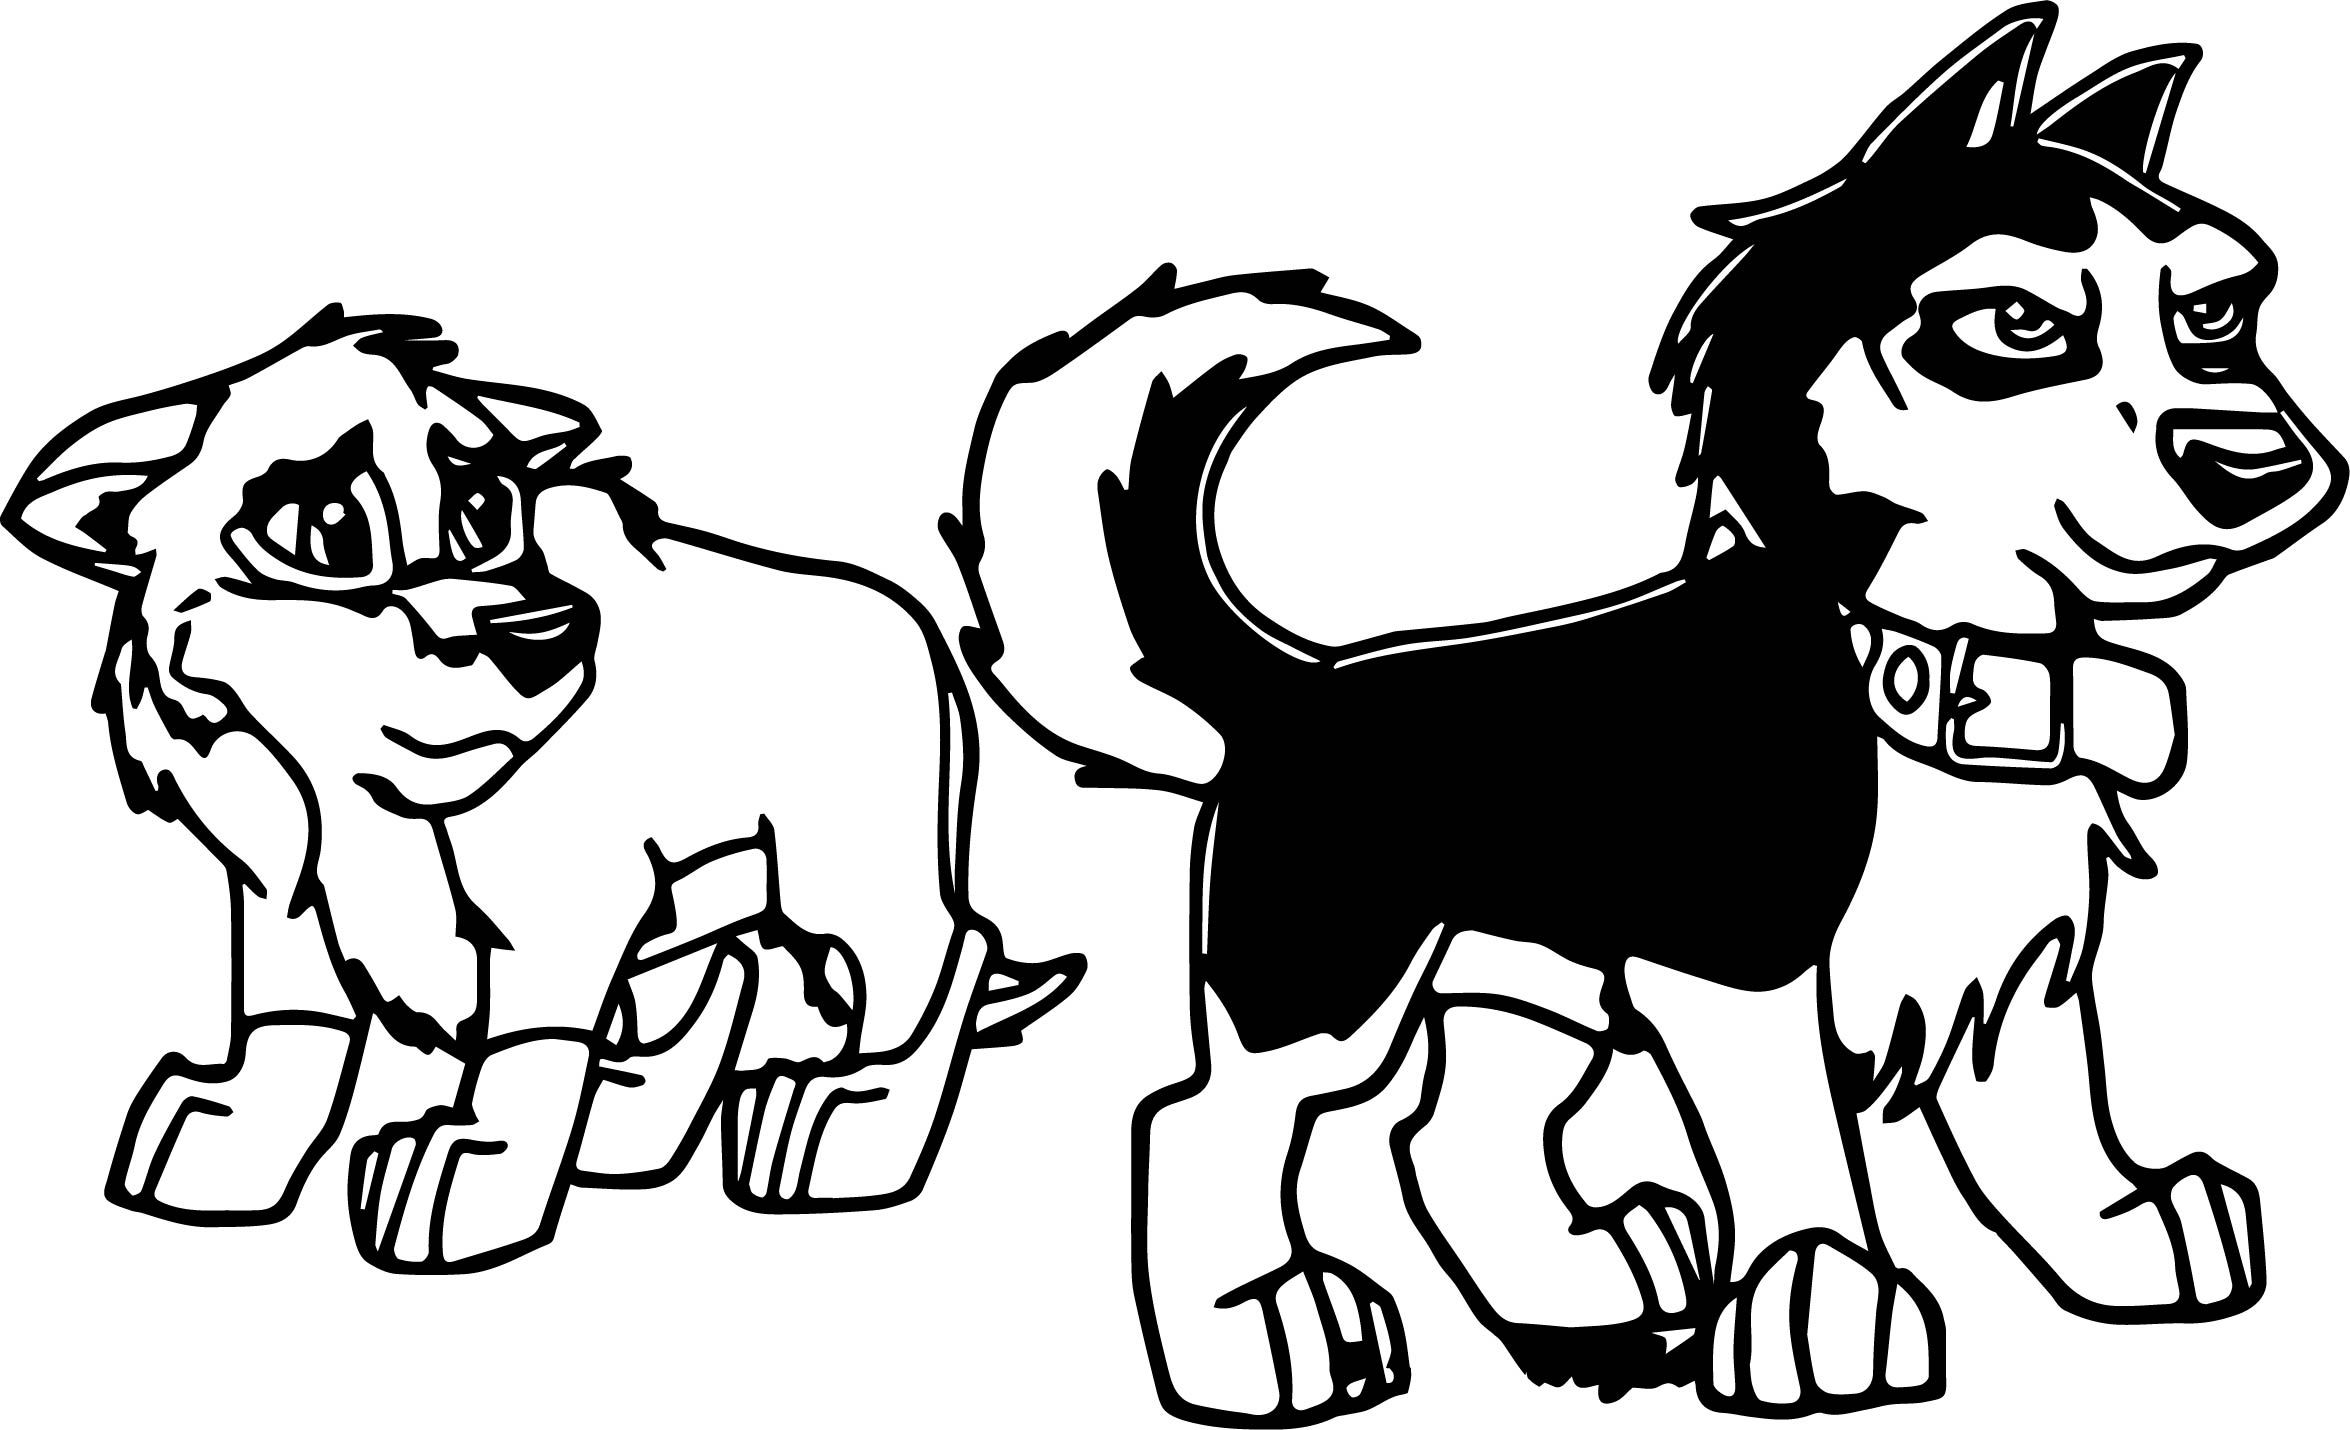 Balto 23 Balto Coloring Pages - Coloring Pages Ideas